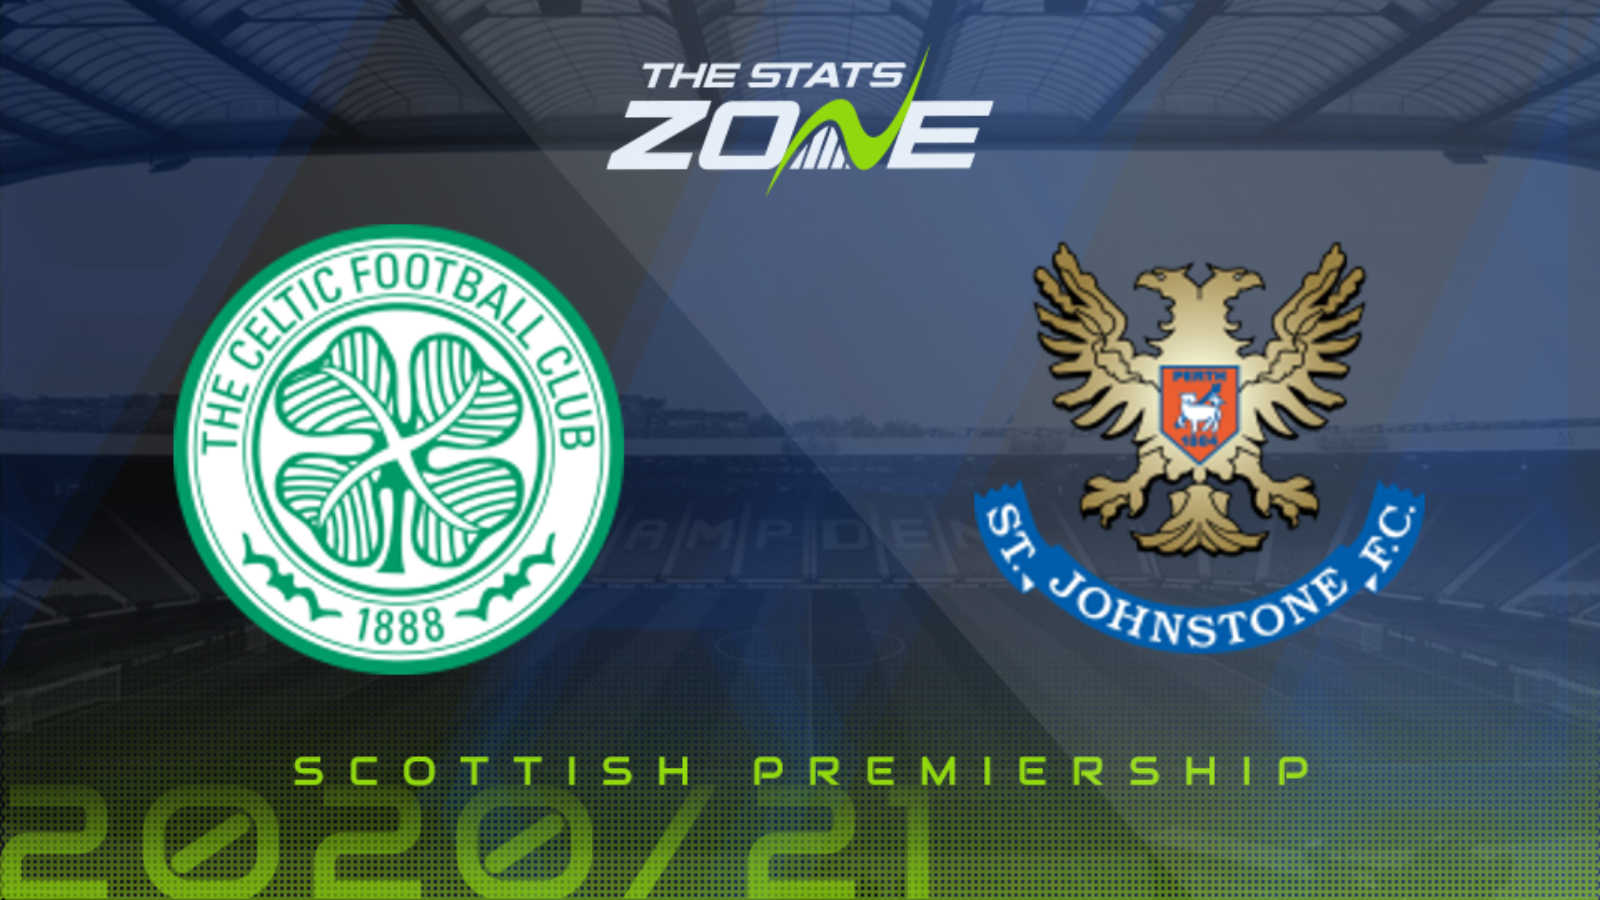 Celtic st johnstone betting preview cash in your bitcoins value